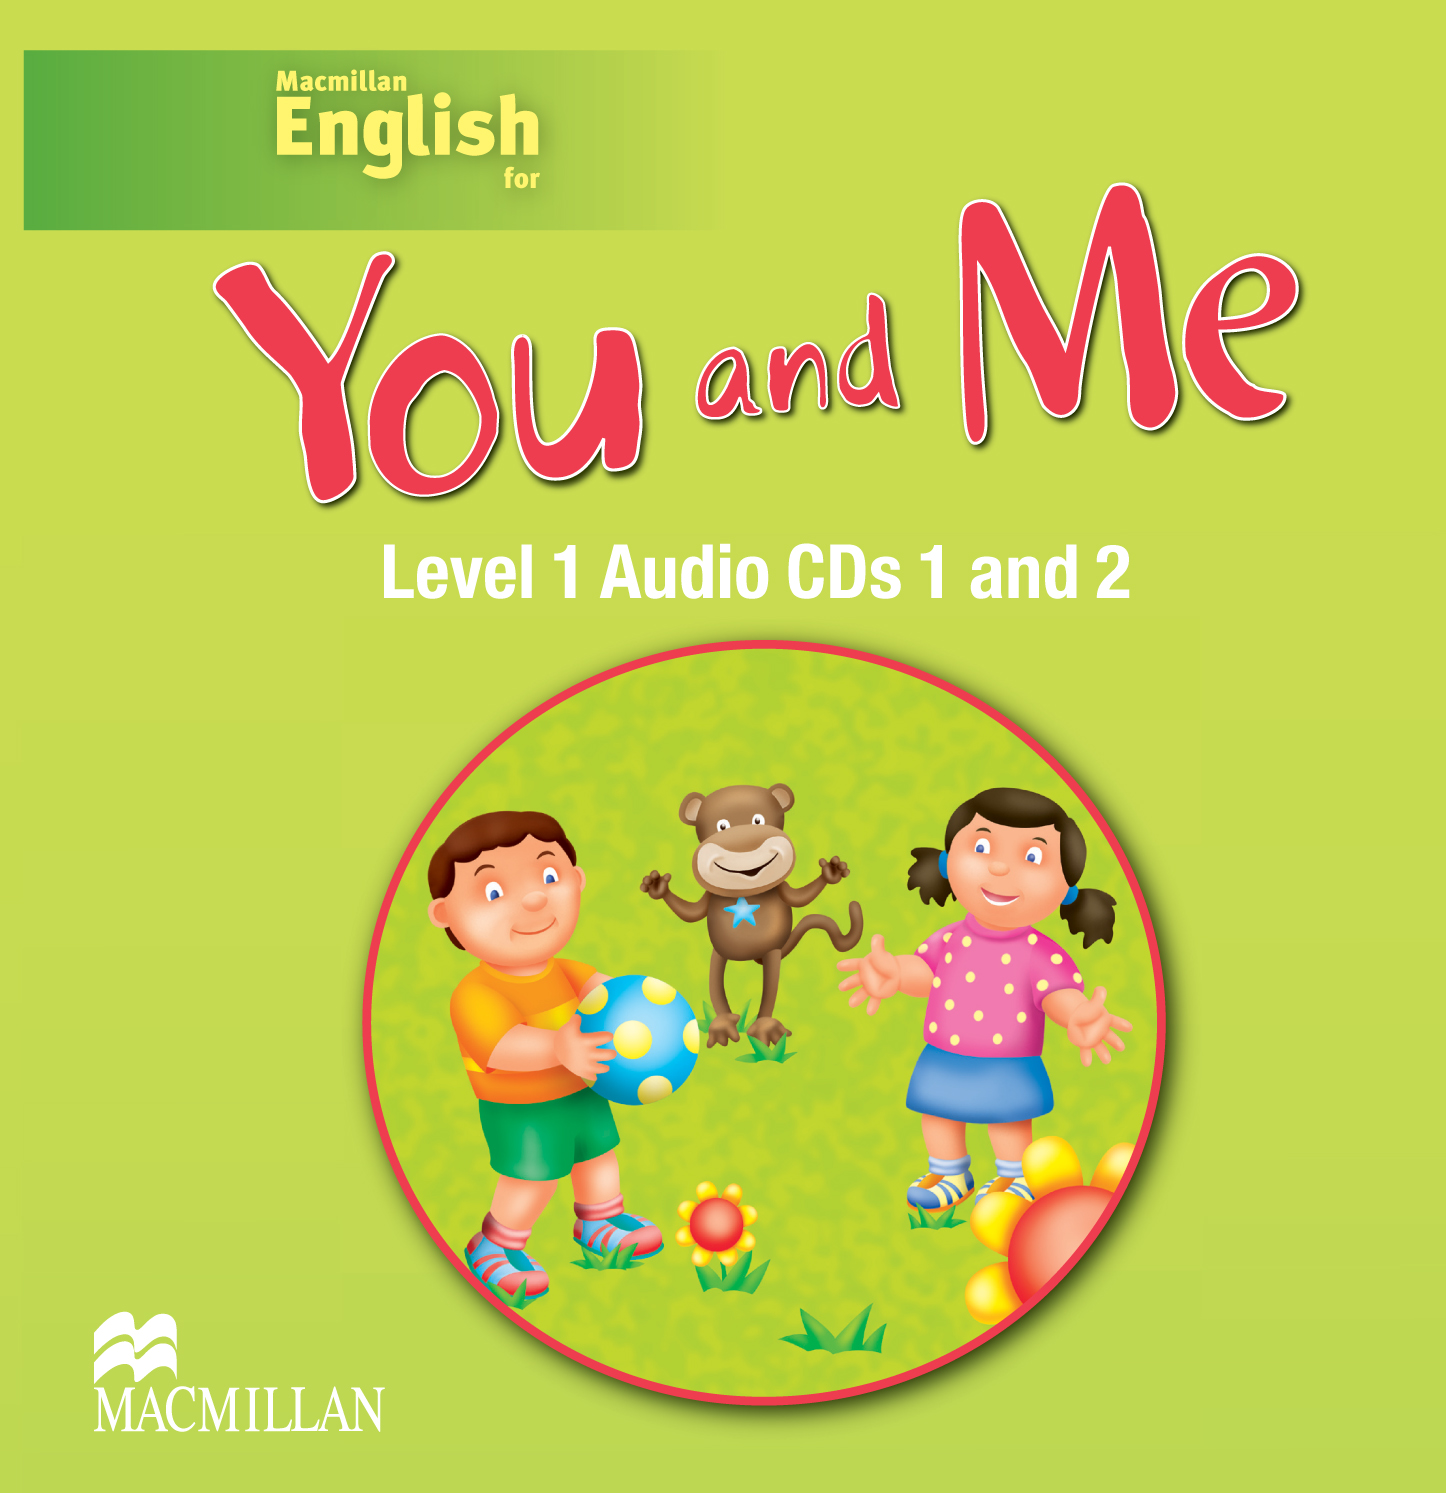 You and Me 1 Audio CD